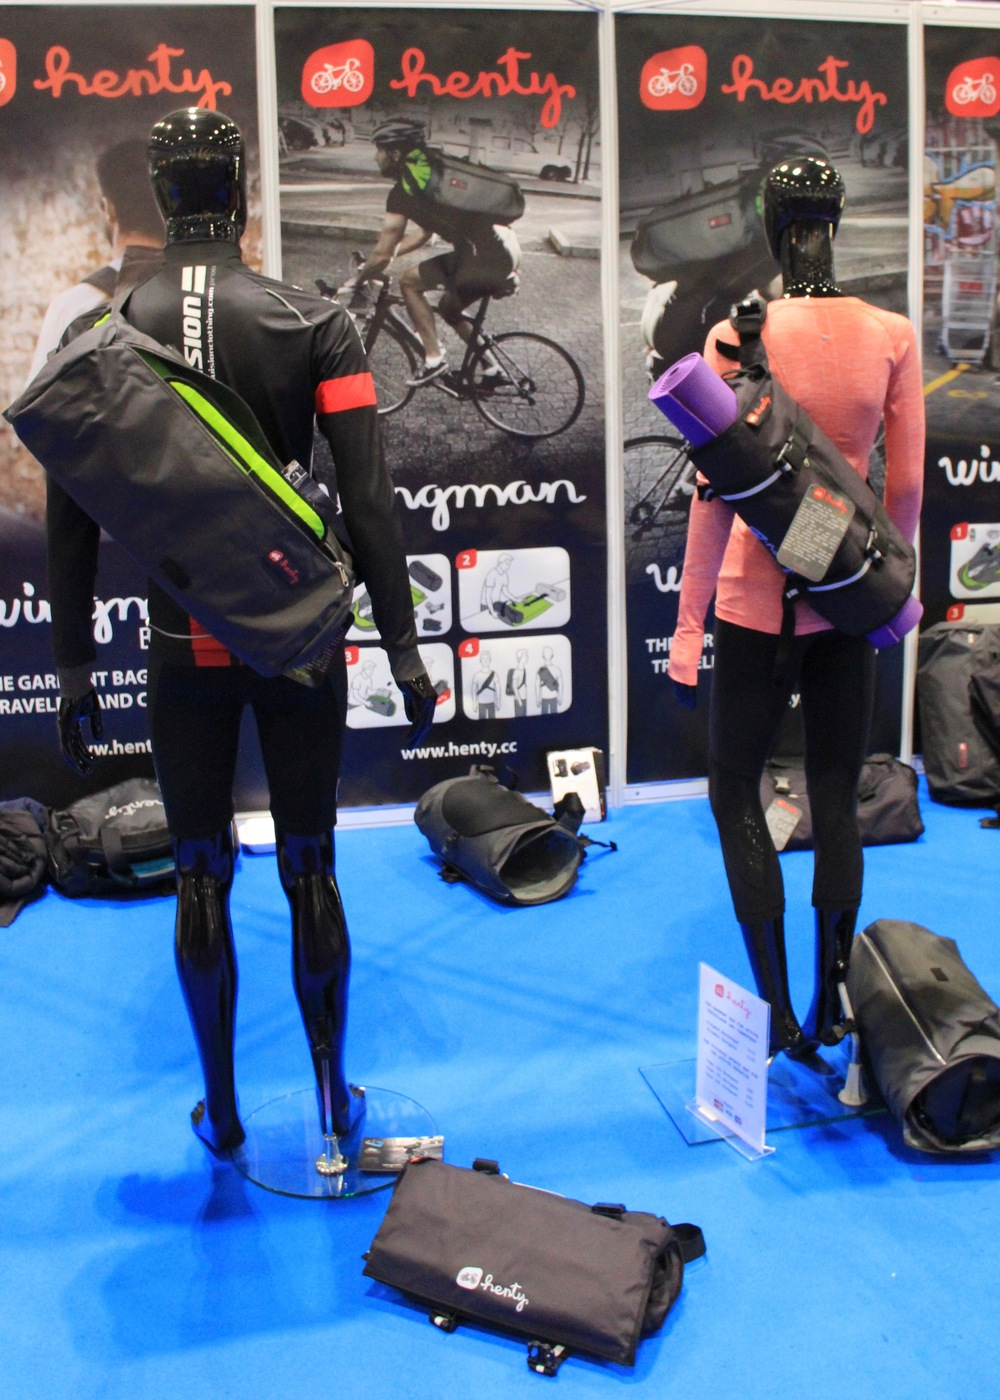 Henty: great solution for the commuter who carries a suit...or yoga mat